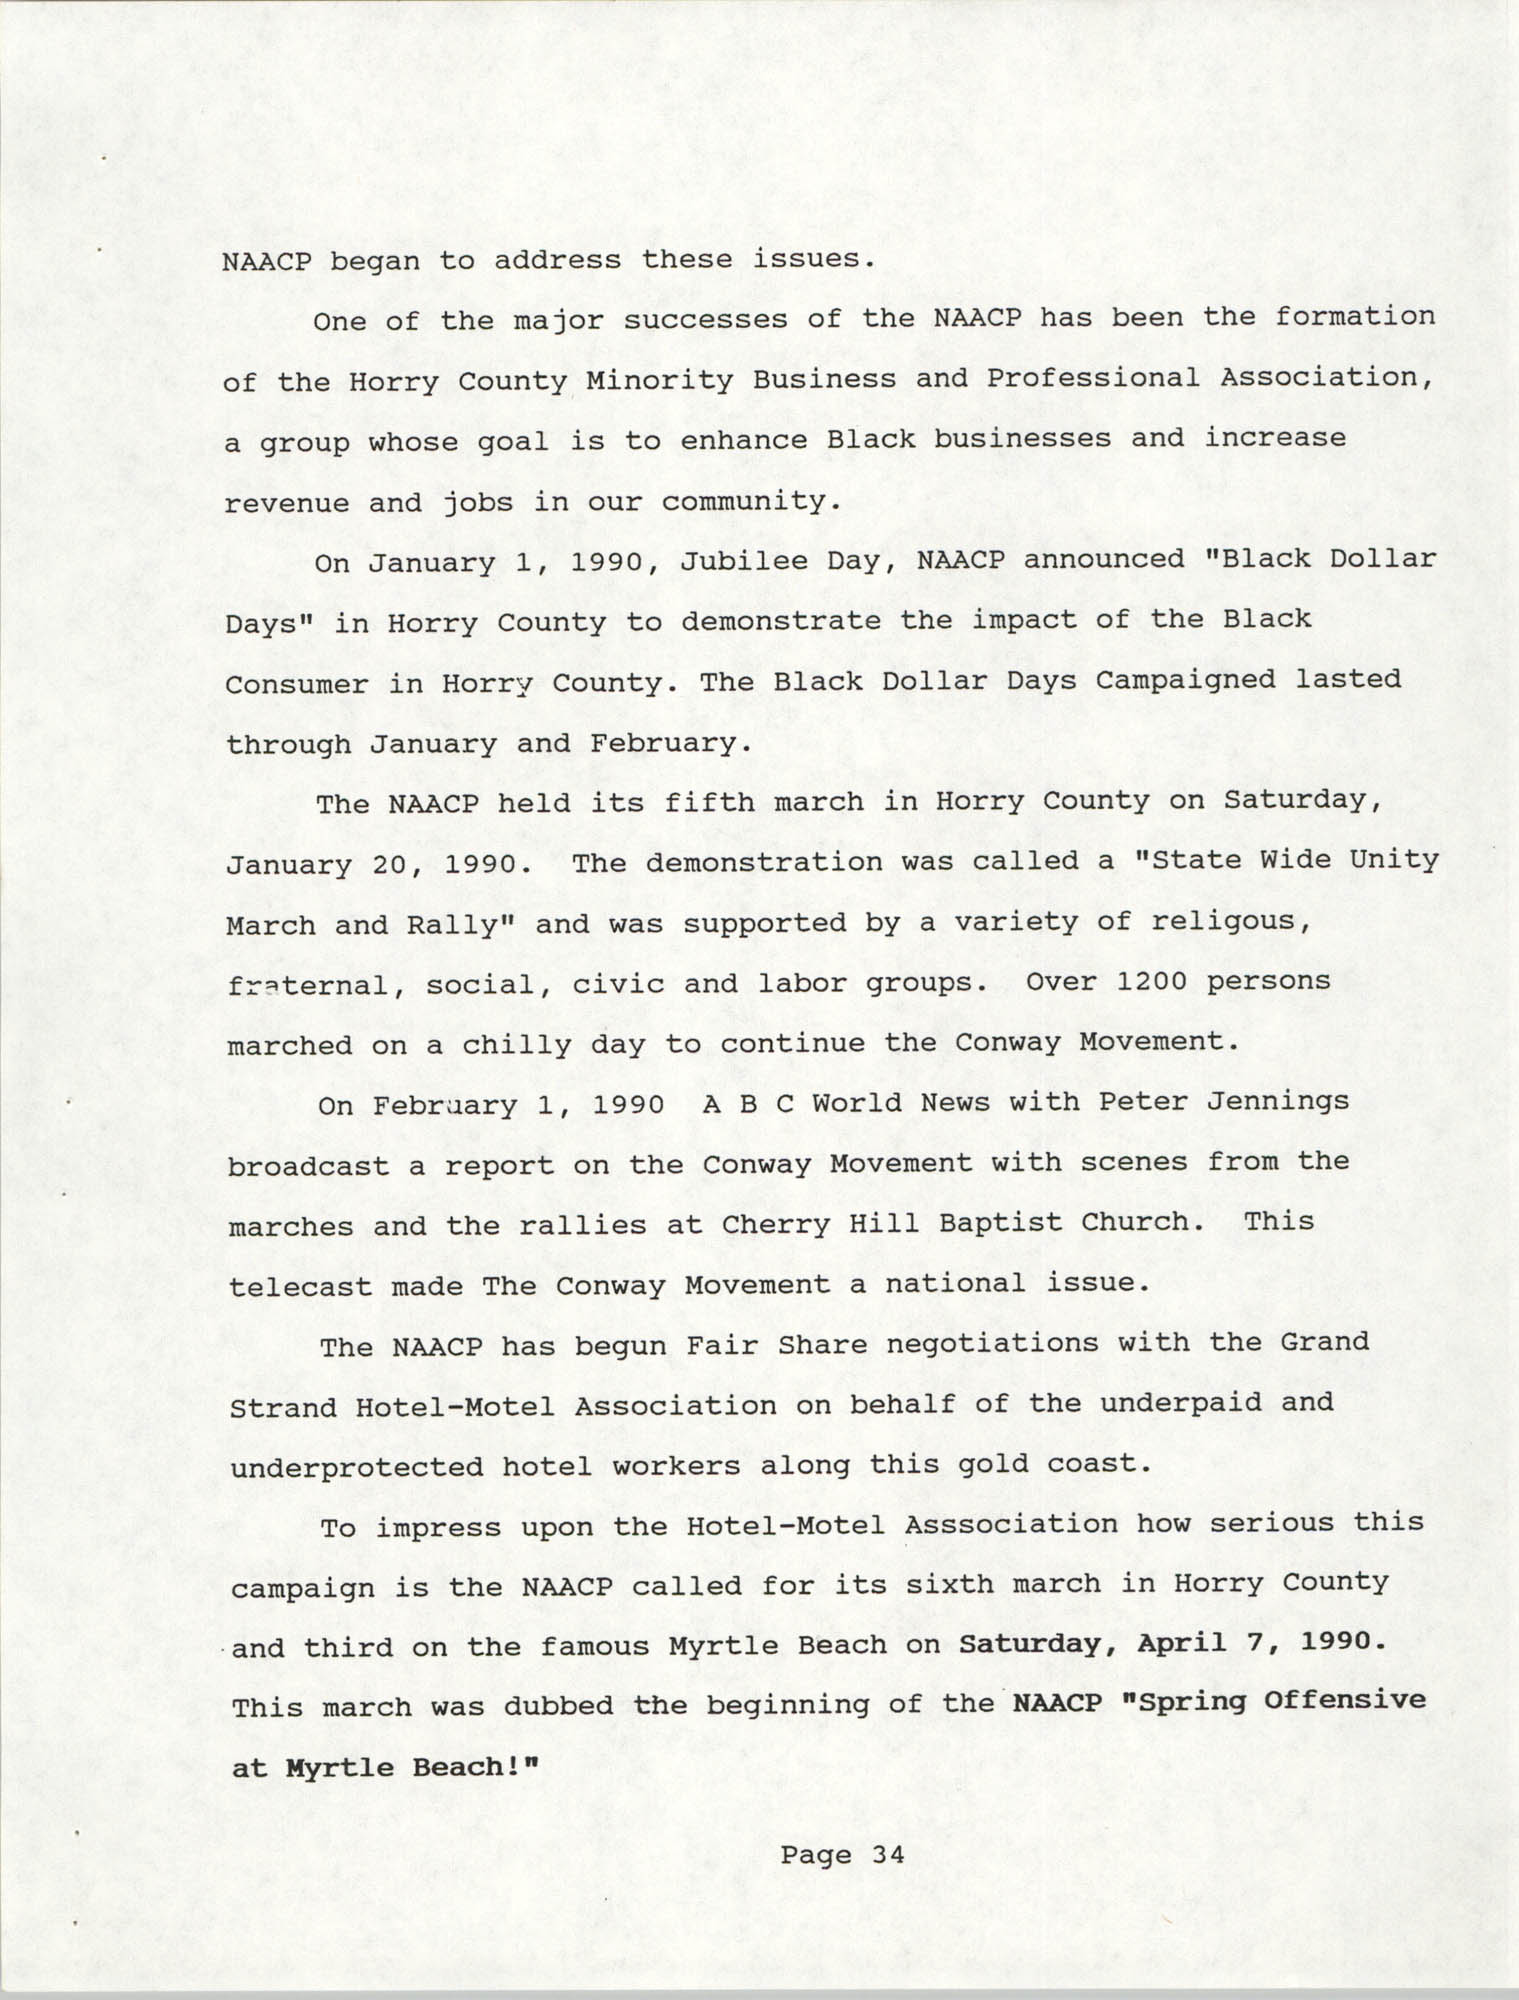 South Carolina Conference of Branches of the NAACP, 1990 Annual Report, Part Two, Page 34